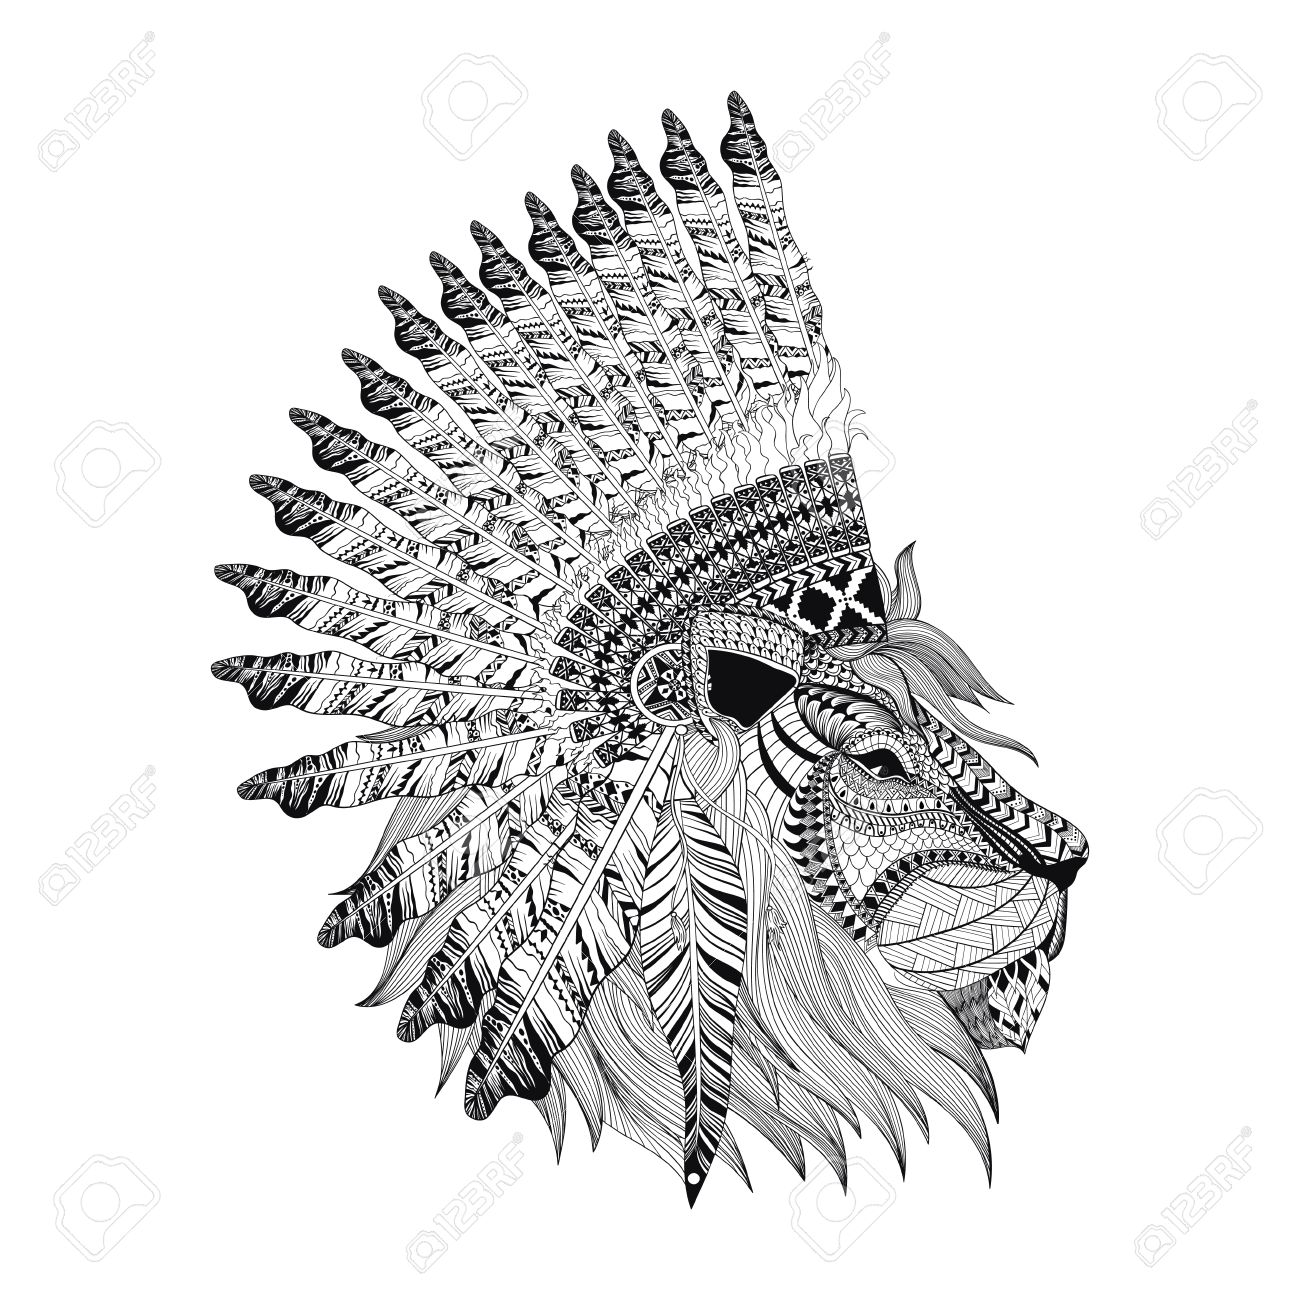 Lion Face With Feathered War Bannet In Zentangle Style High Detailed Headdress For Indian Chief